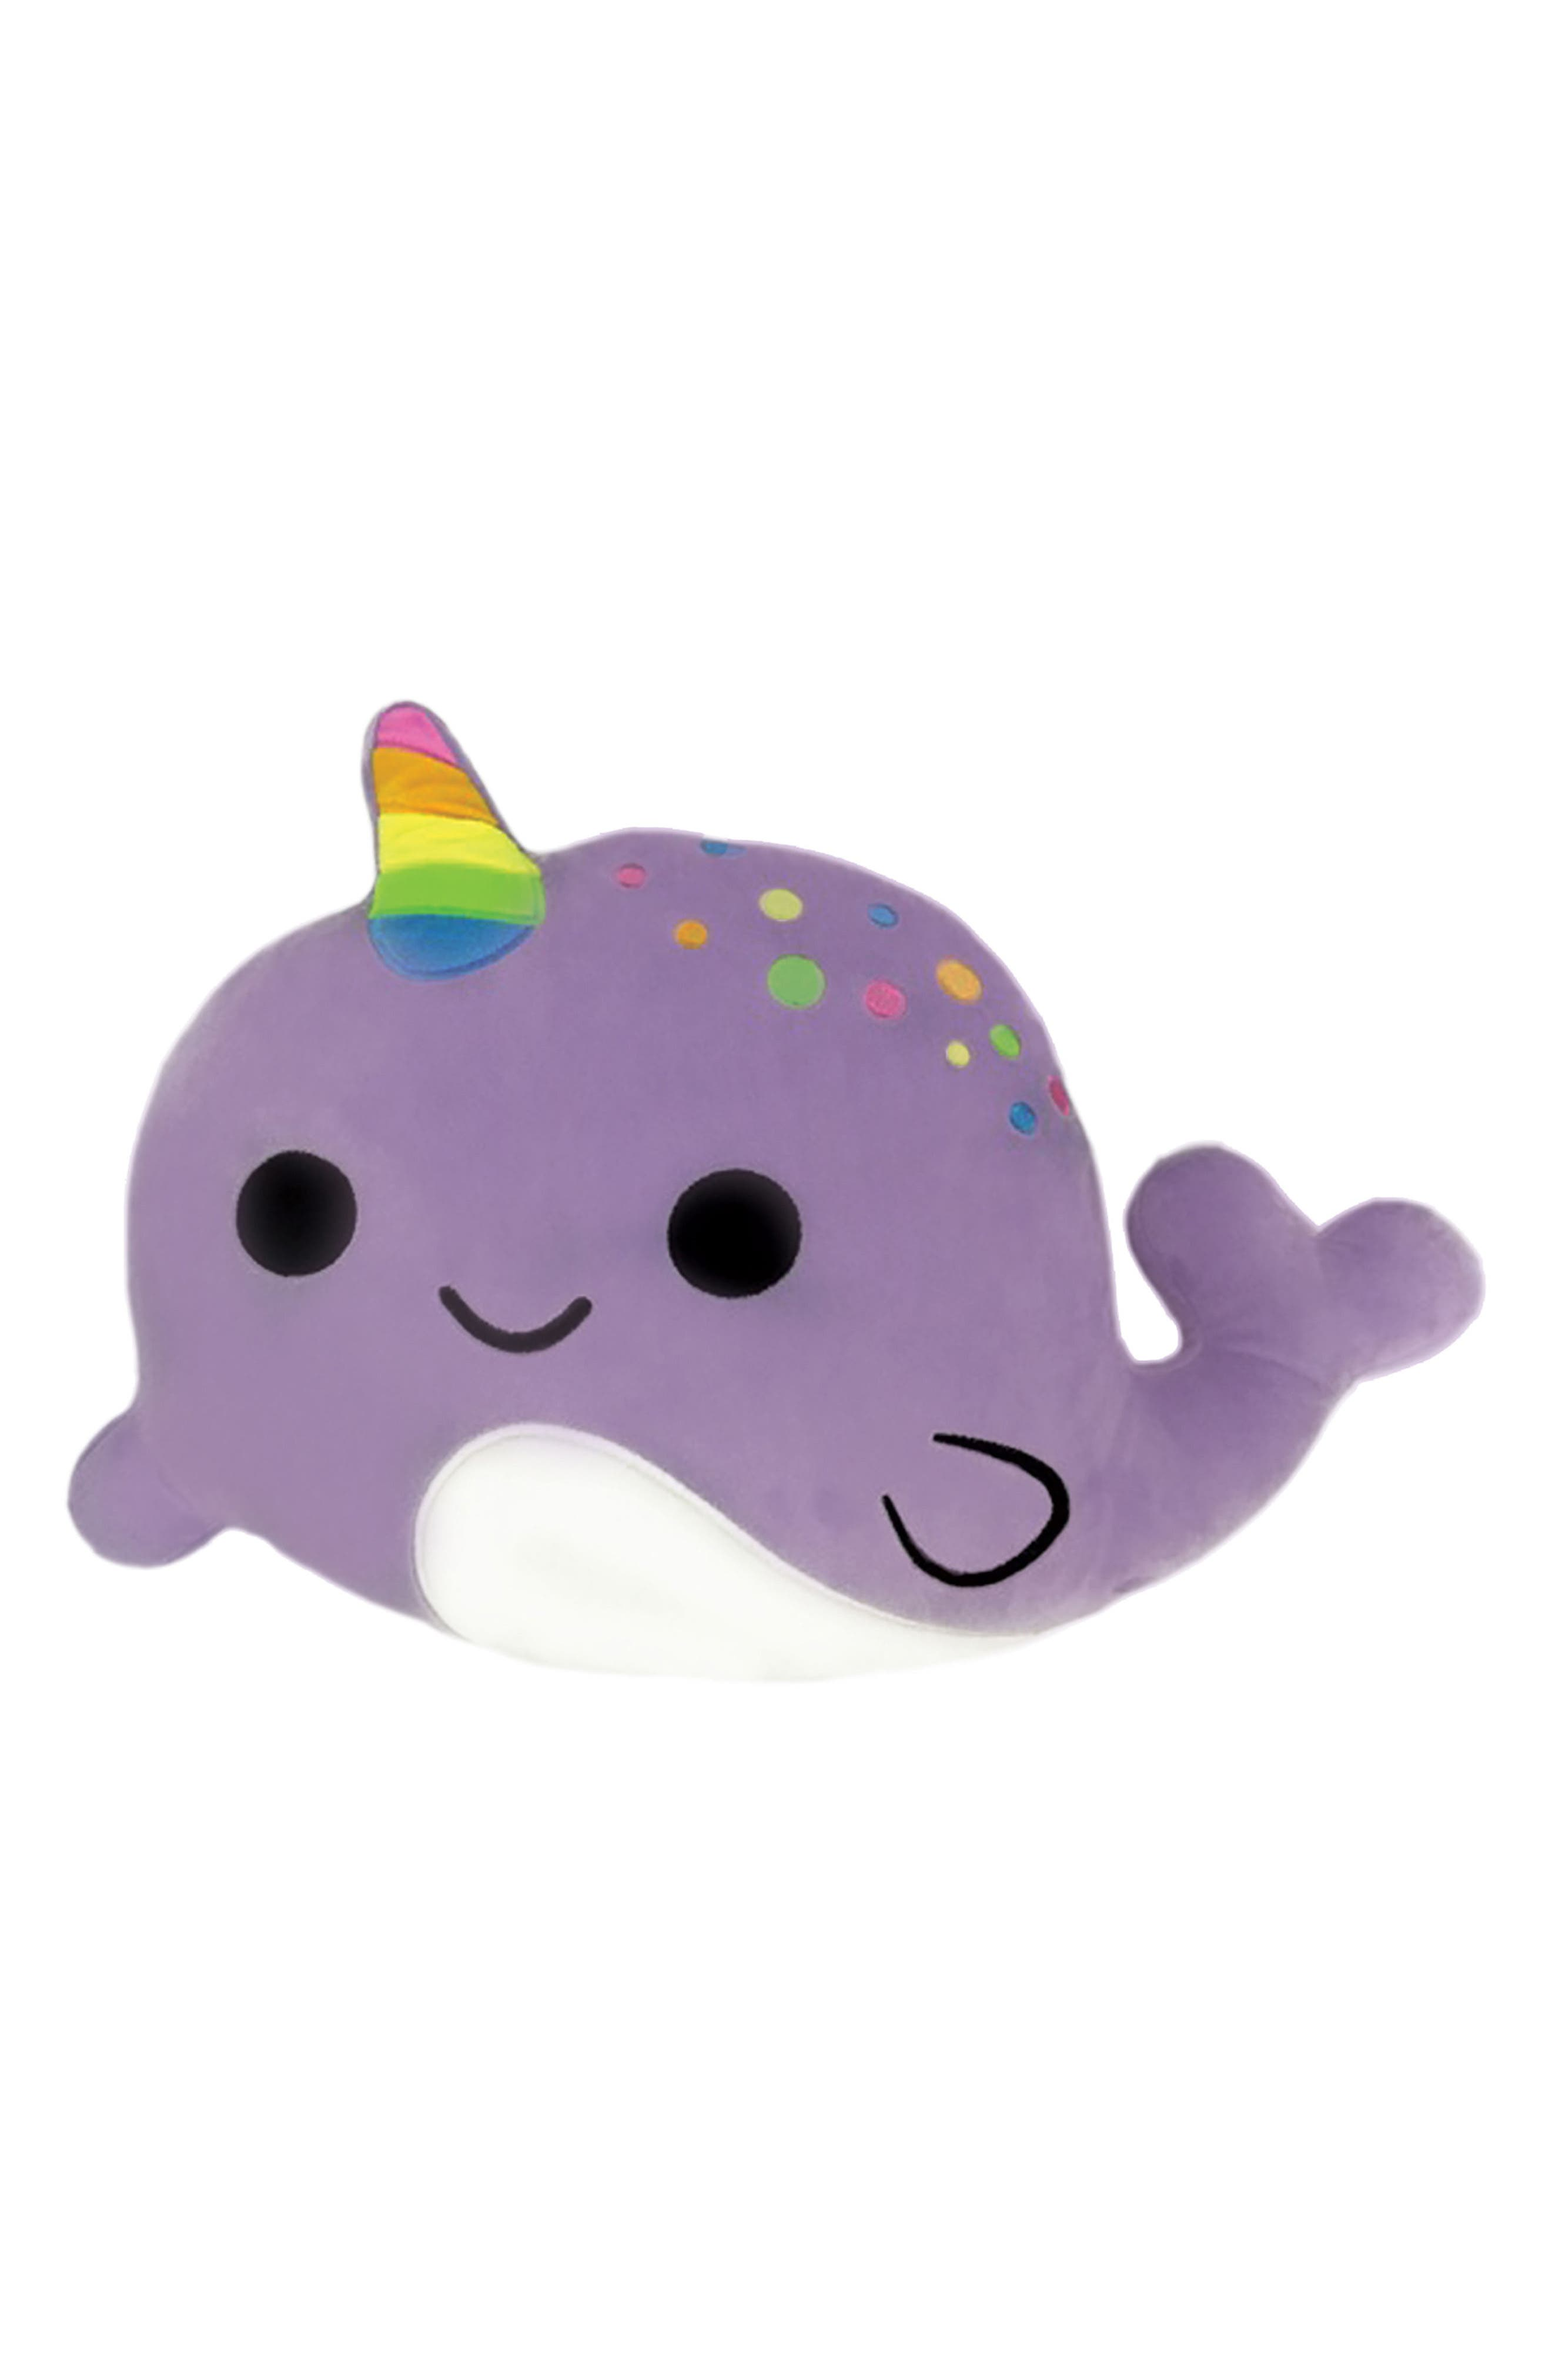 Scented Narwhal Pillow,                         Main,                         color, Purple